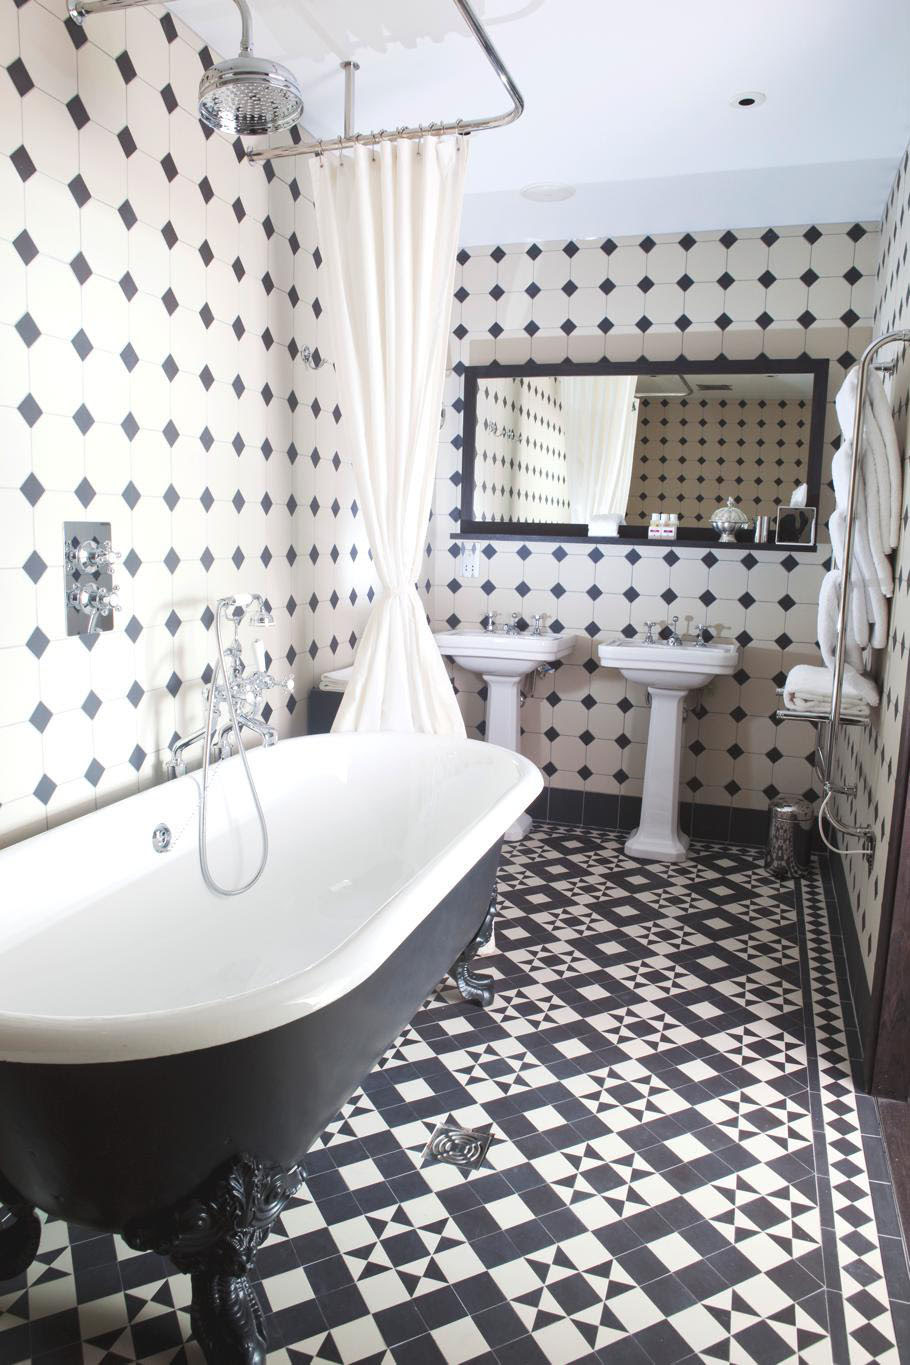 Floor tiles on Pinterest | Victorian, Tile and Tile Floor ...